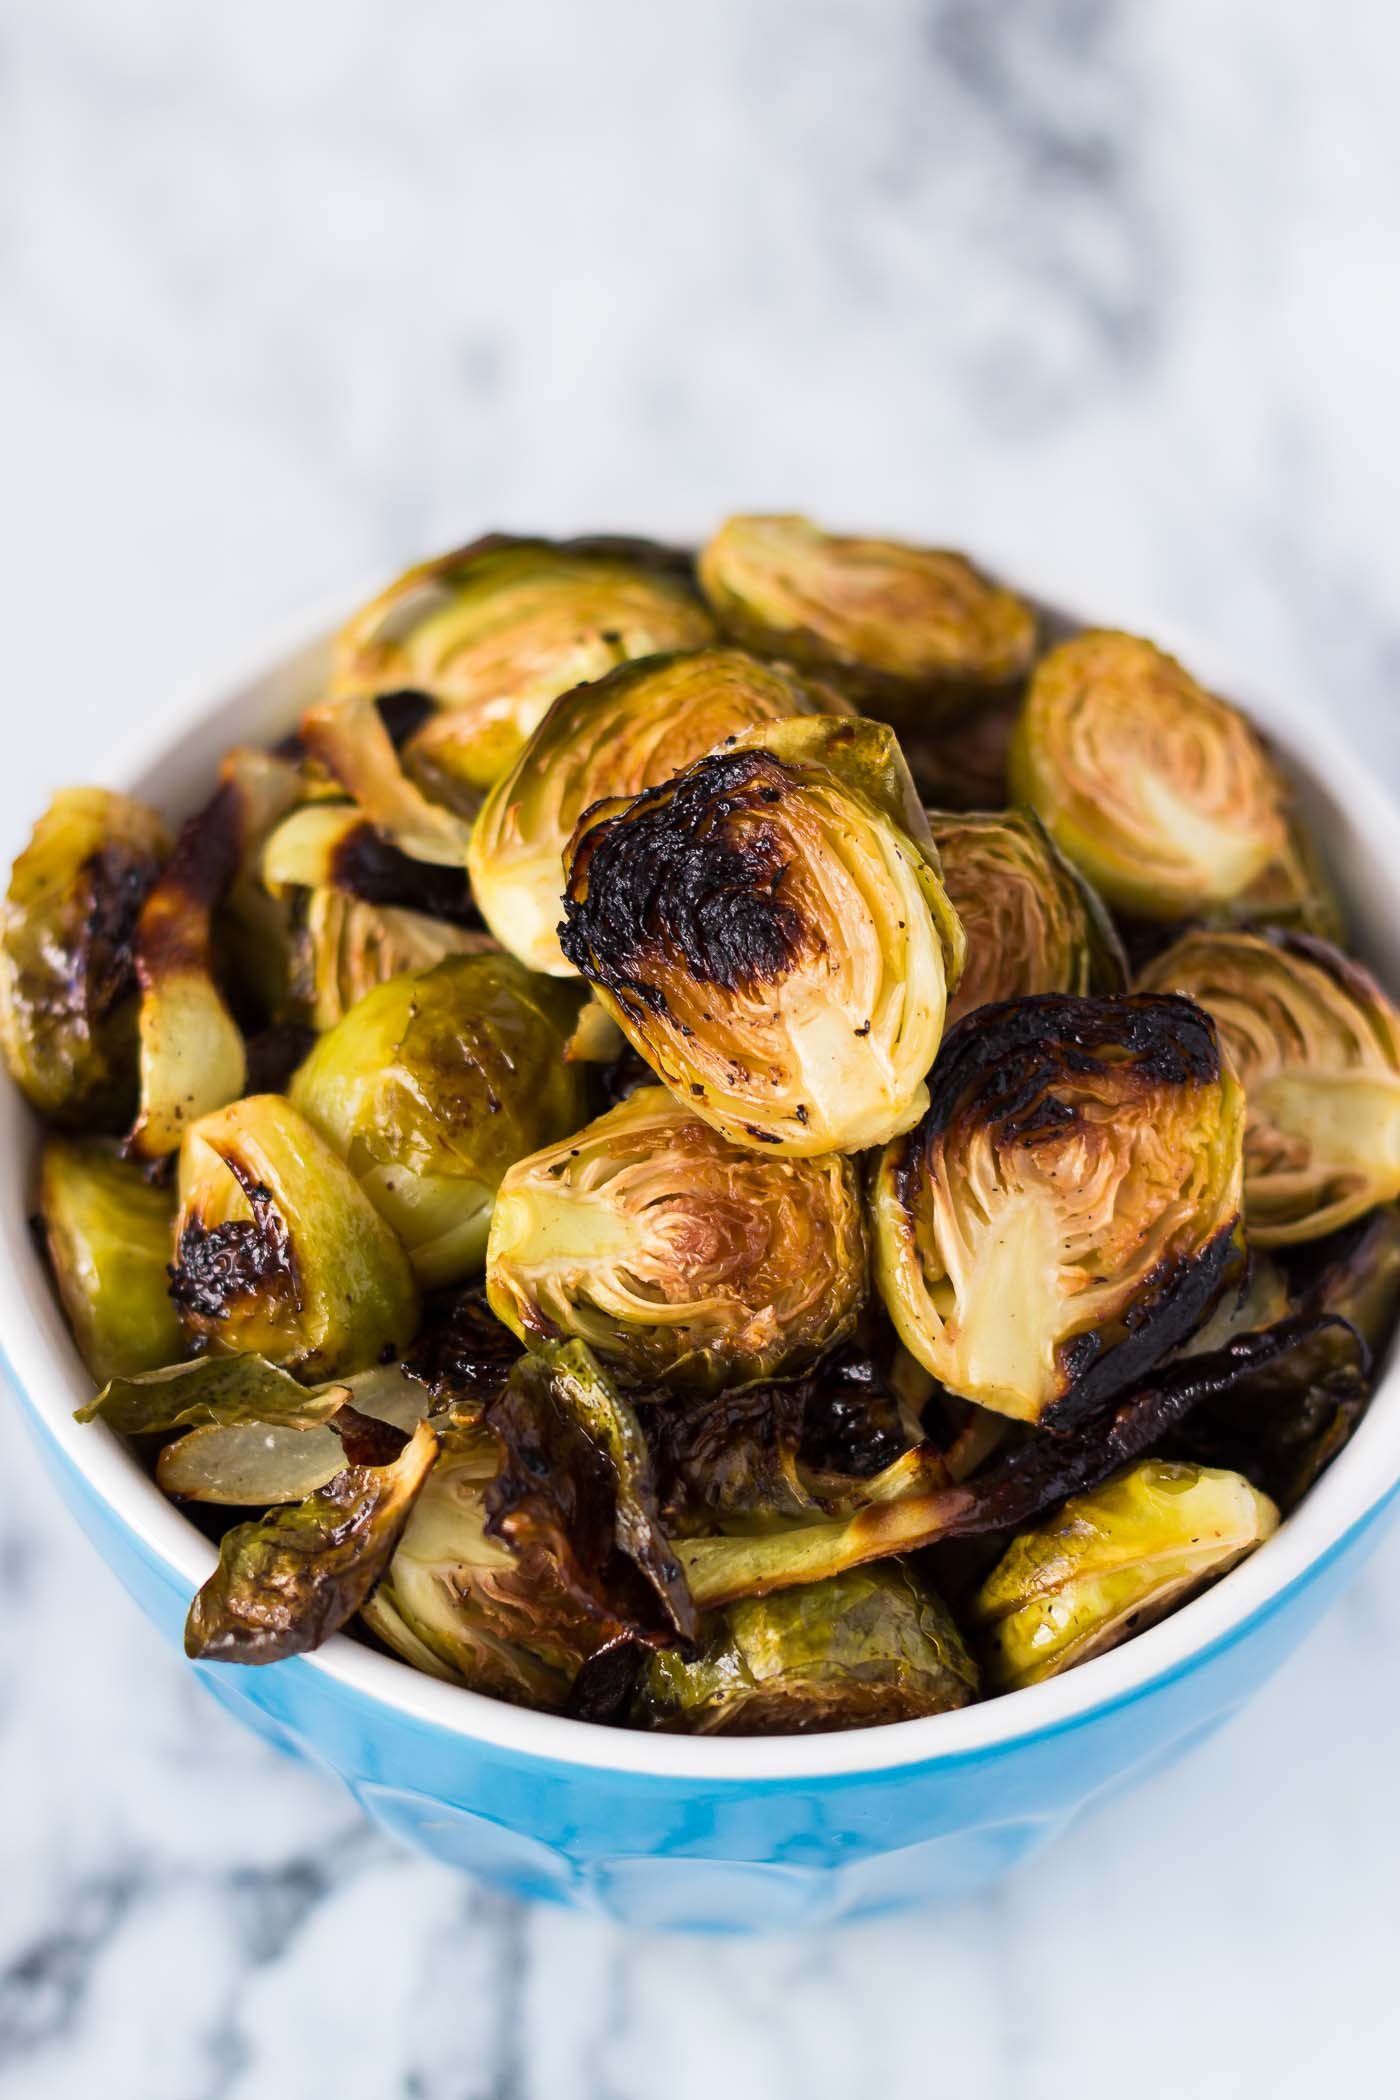 Sheet Pan Rosemary Garlic Brussels Sprouts-45 degree top view angle-roasted sprouts in a blue bowl without garnishing